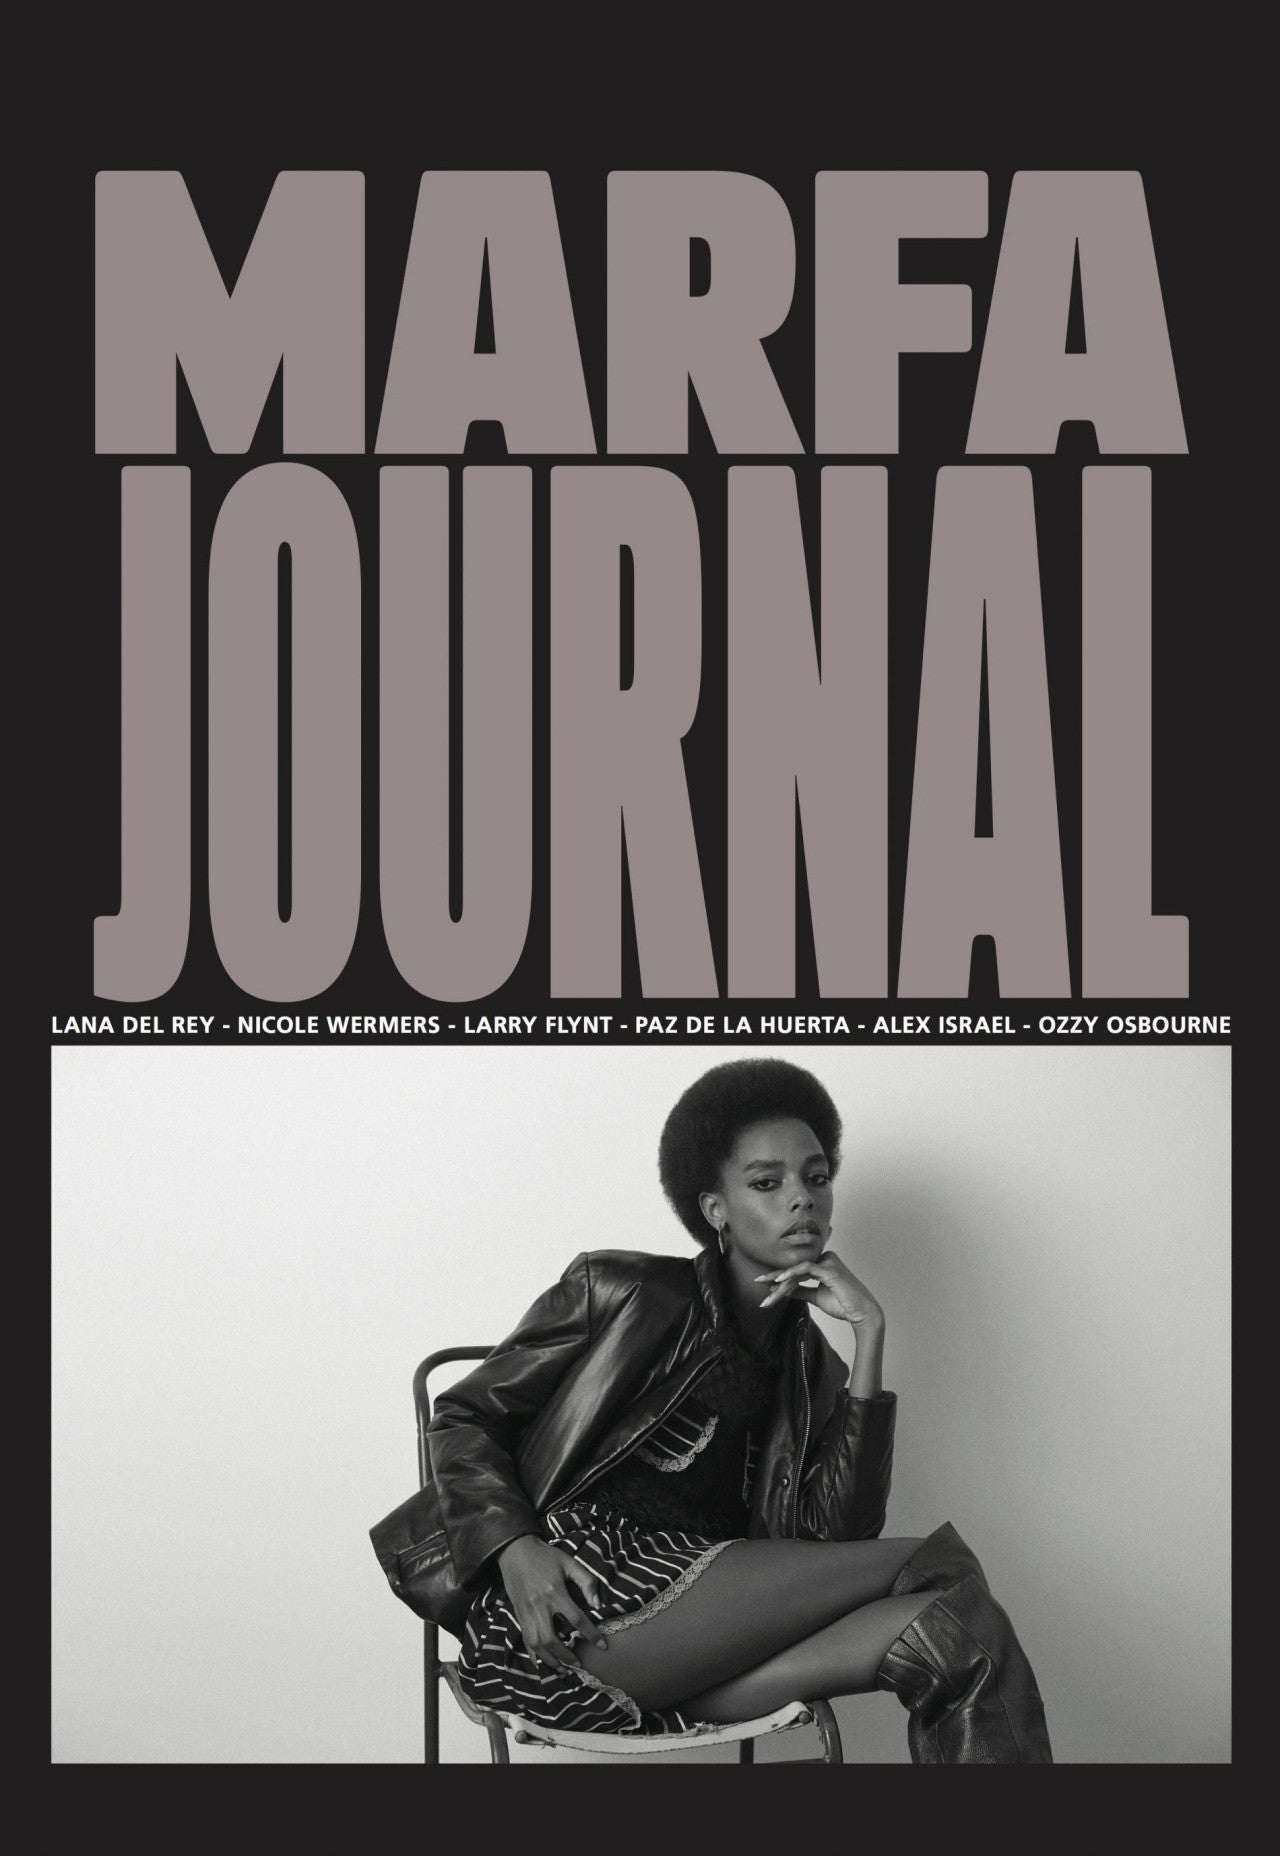 MARFA JOURNAL 04 (Karly Loyce cover)